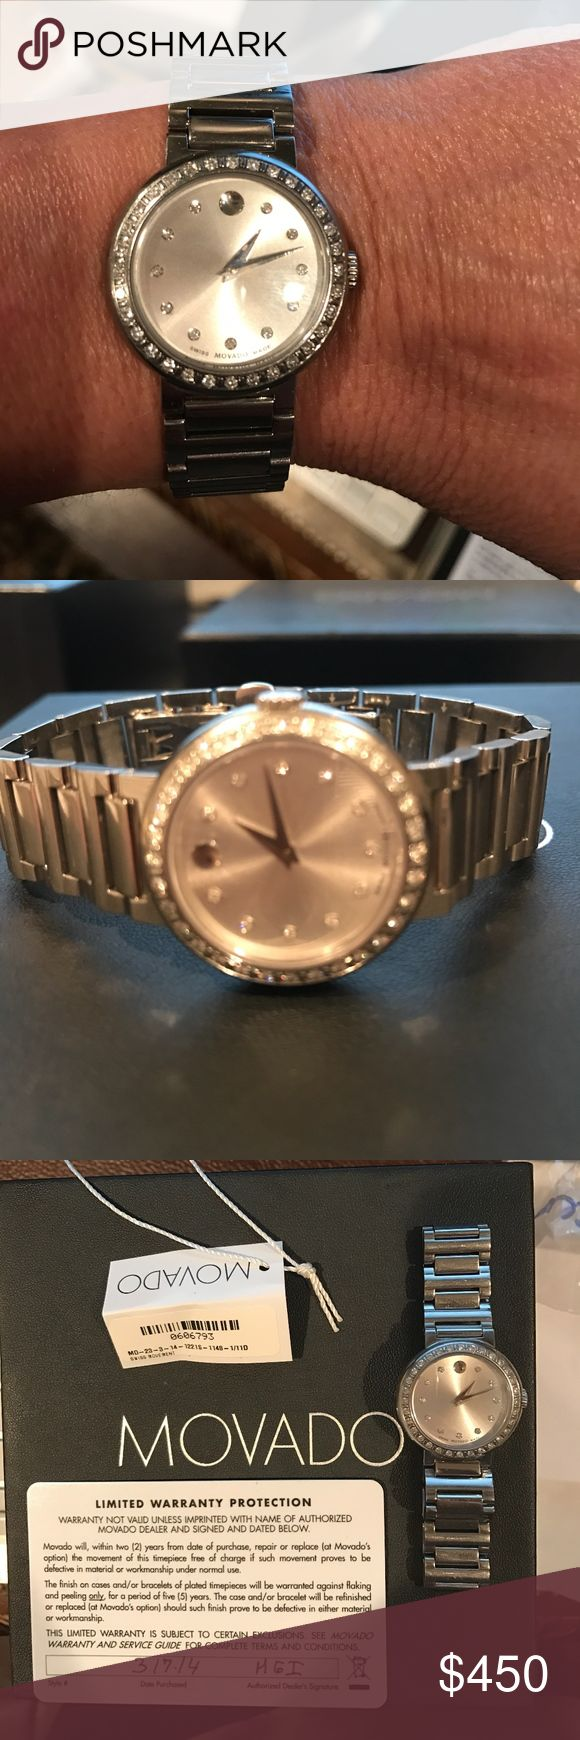 Movado Ladies Concerto diamond watch - 0606793 Bought in 2014 watch is in excellent condition.  Taken very good care of.  New watch sold for $1995. Watch comes with box and warranty card however warranty expired in 2016.  I have not had any service performed at all on the watch and it is working great!  Watch is 26 mm stainless steel bracelet water resistant to 100ft very pretty on and a really good deal! Movado Accessories Watches